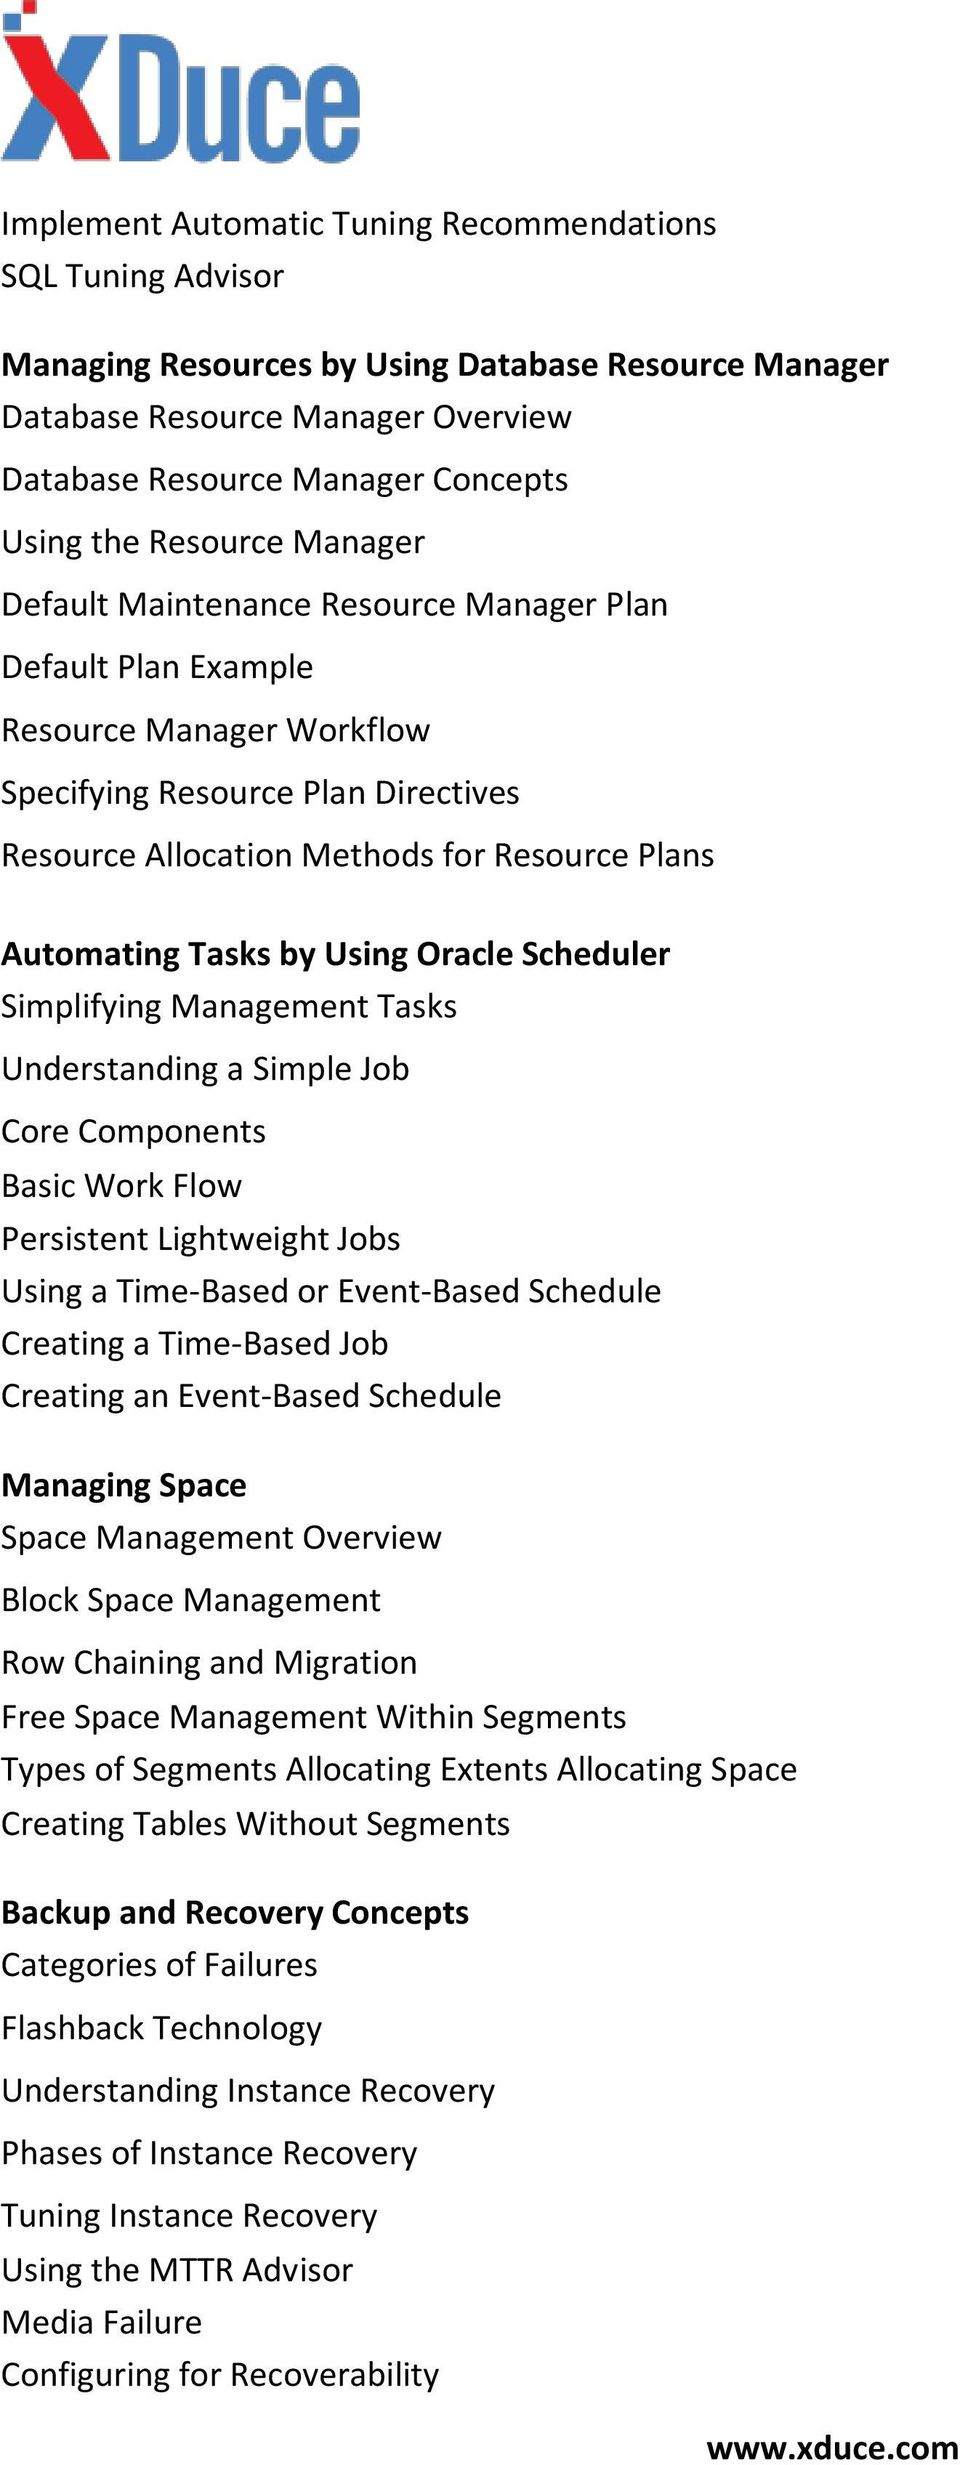 Tasks by Using Oracle Scheduler Simplifying Management Tasks Understanding a Simple Job Core Components Basic Work Flow Persistent Lightweight Jobs Using a Time-Based or Event-Based Schedule Creating